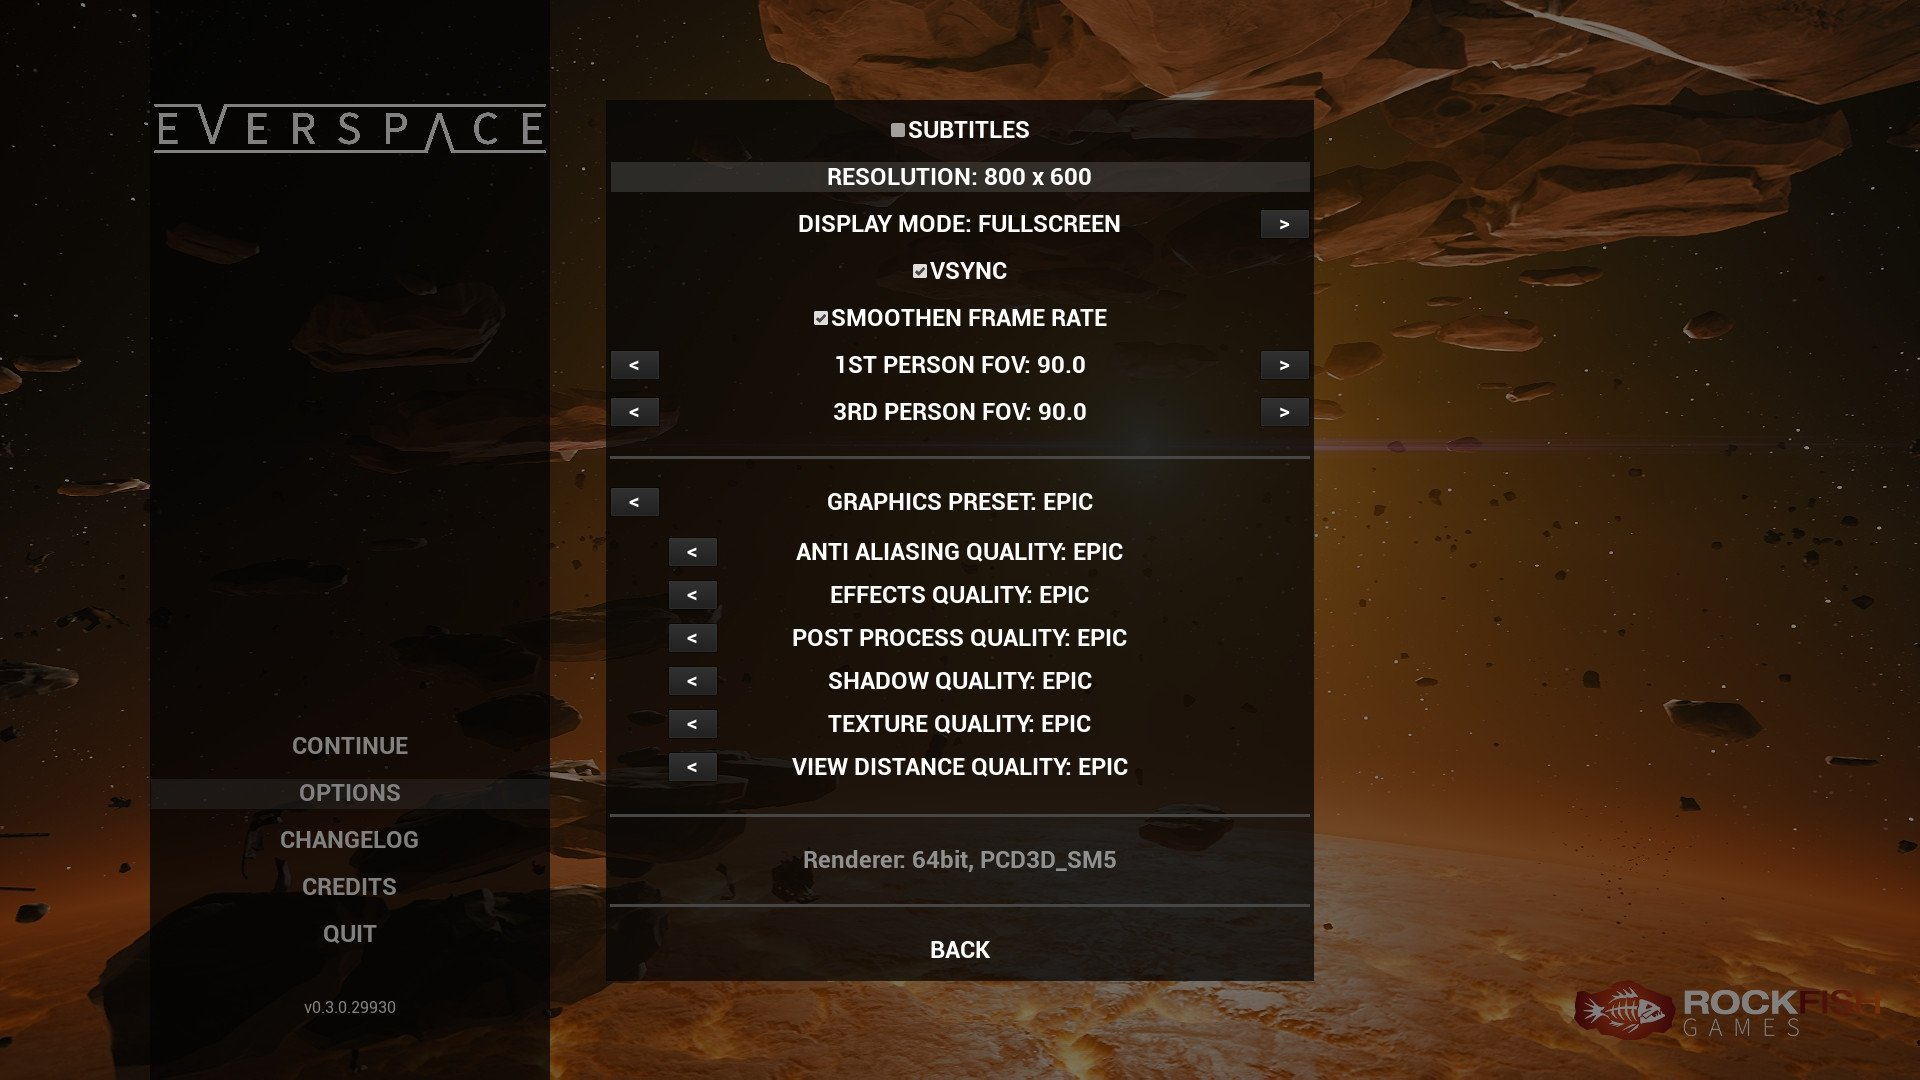 Everspace reports wrong resolution and does not shut down